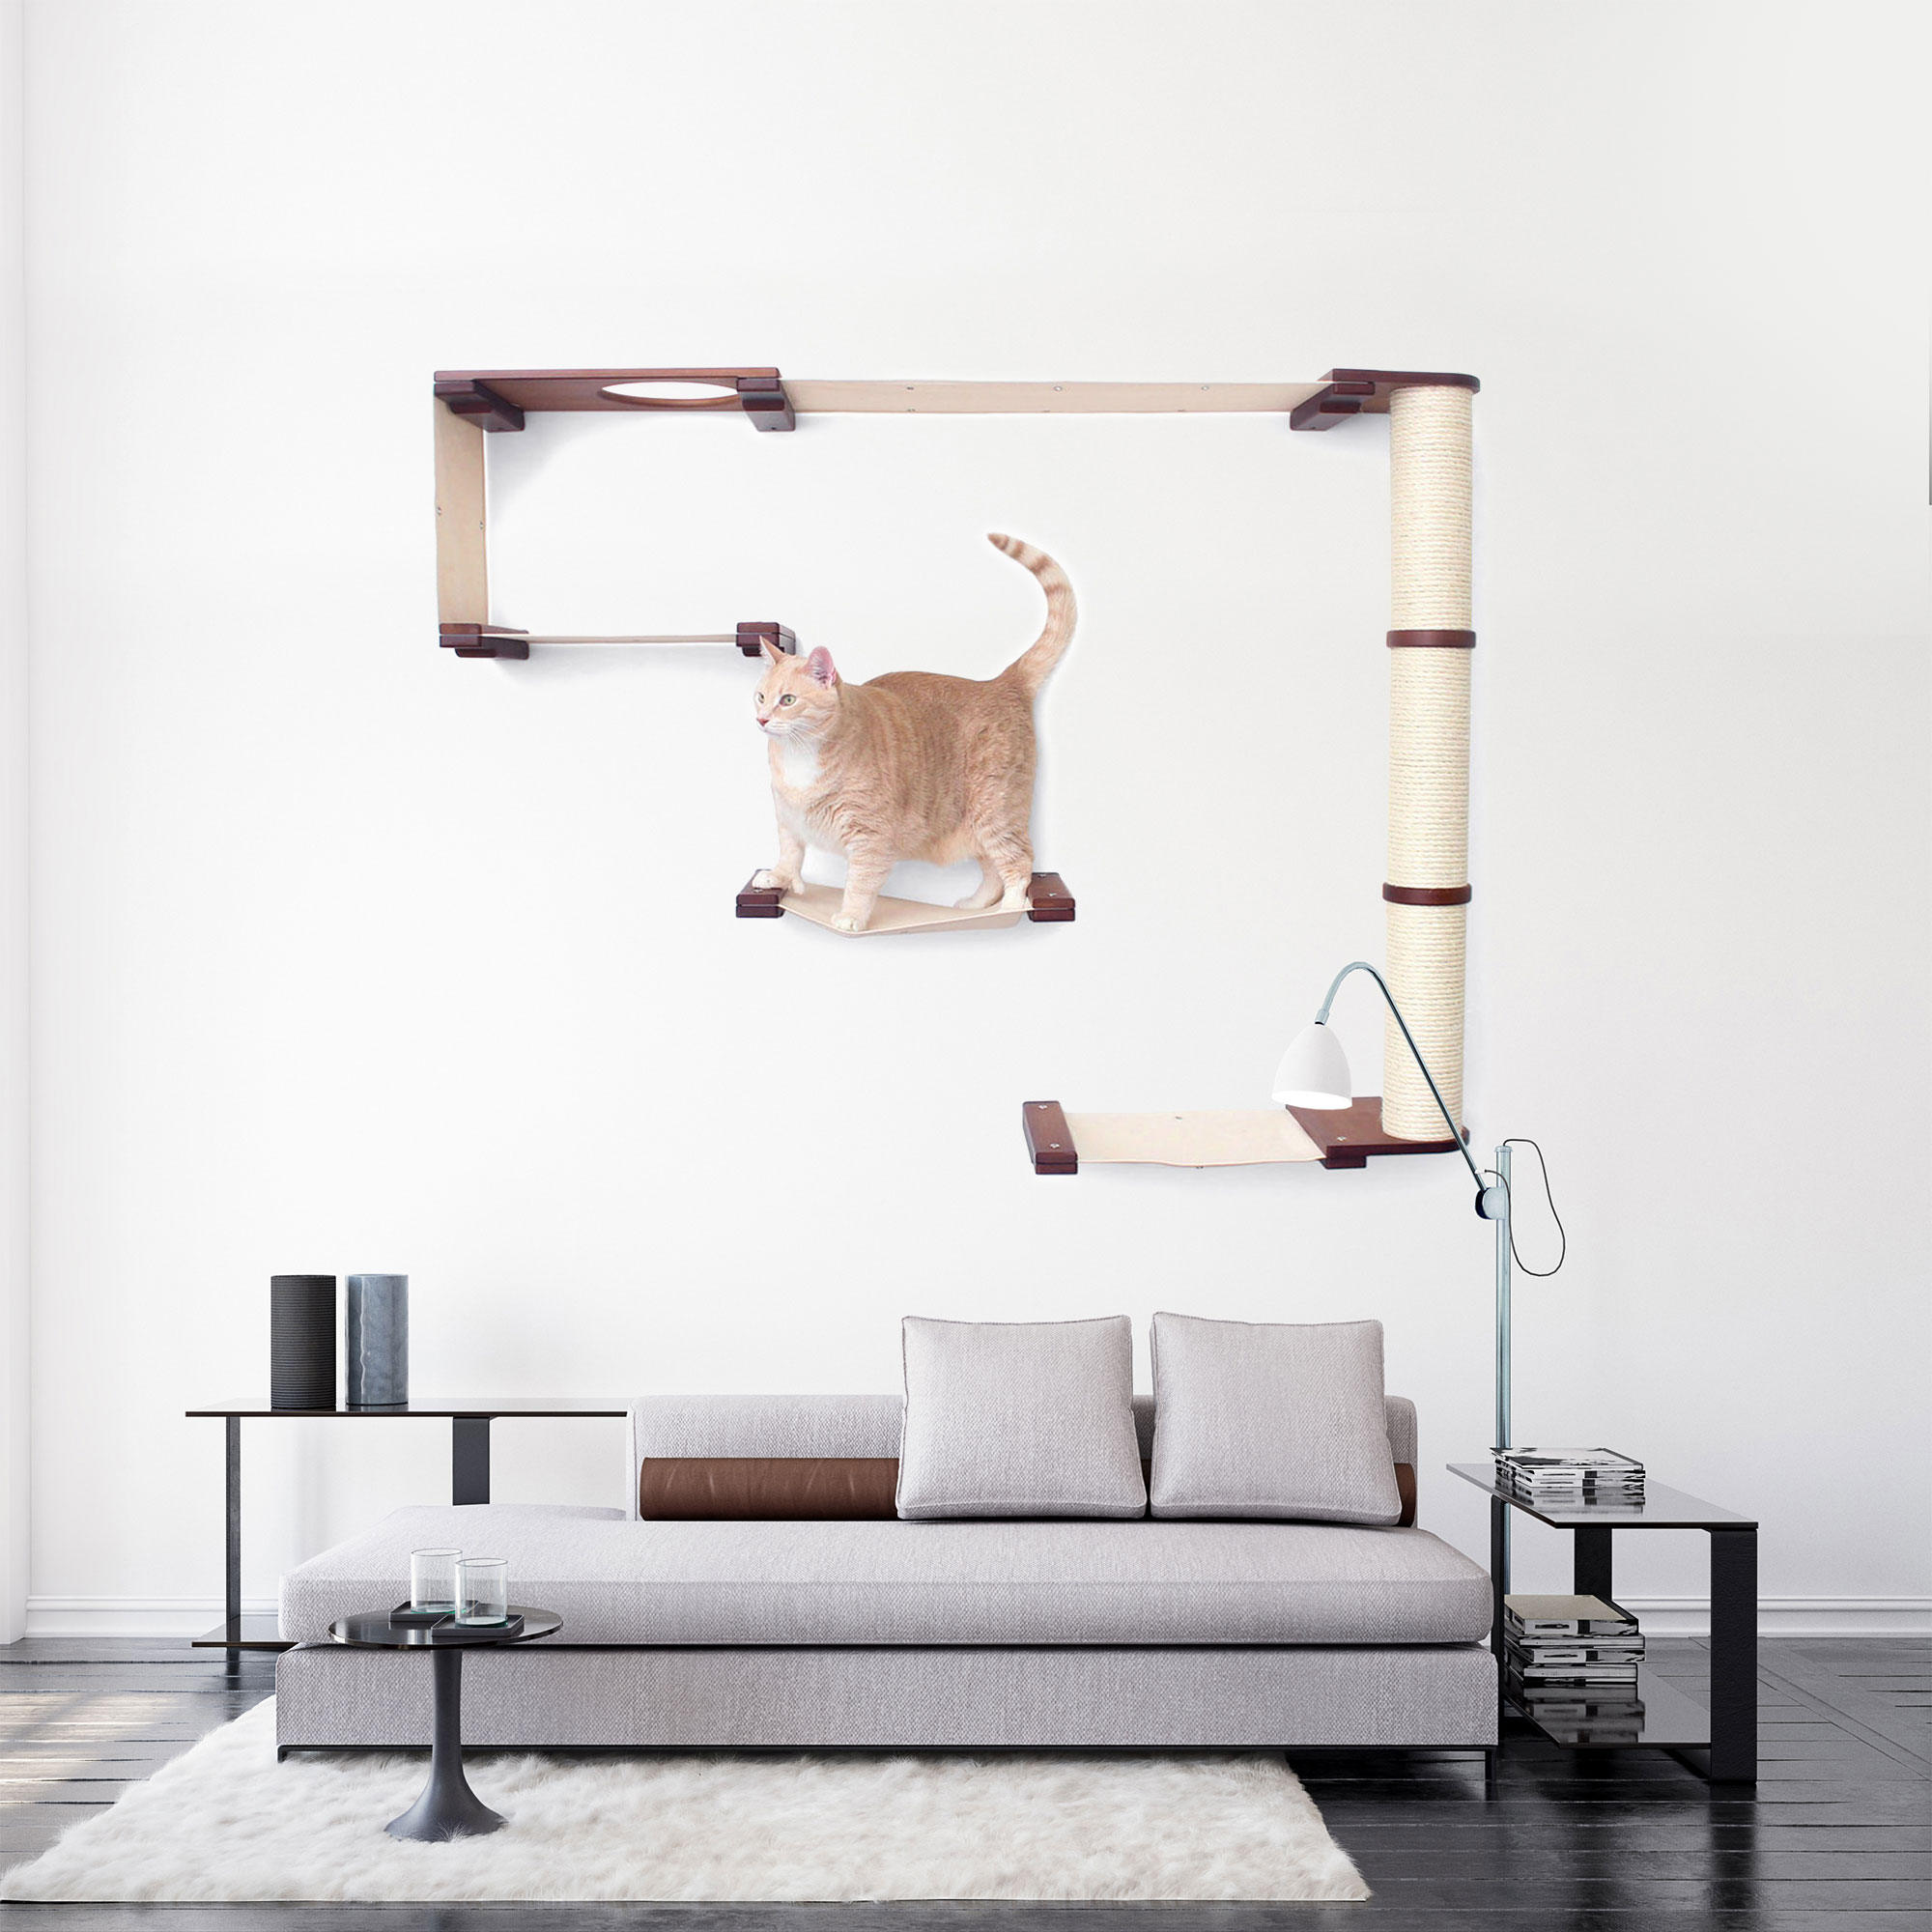 This photo displays our cat on the Climb complex mounted in a living room setting. This image shows the complex in English Chestnut, a dark brown stain, with Natural fabric, a light tan color.